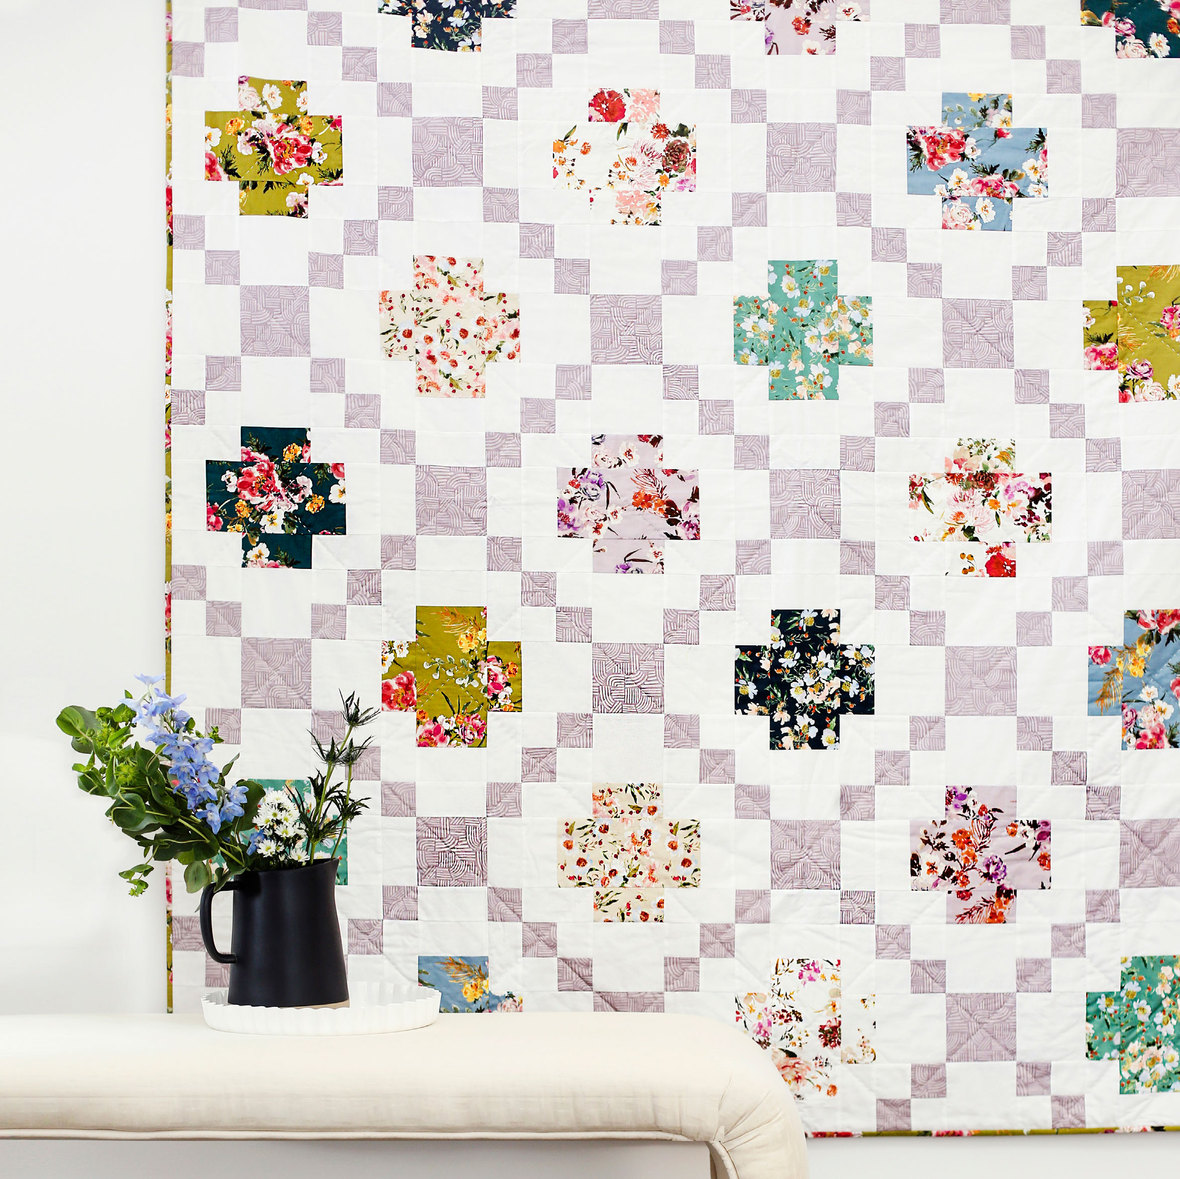 Modern-Crossing-Patchwork-and-Poodles